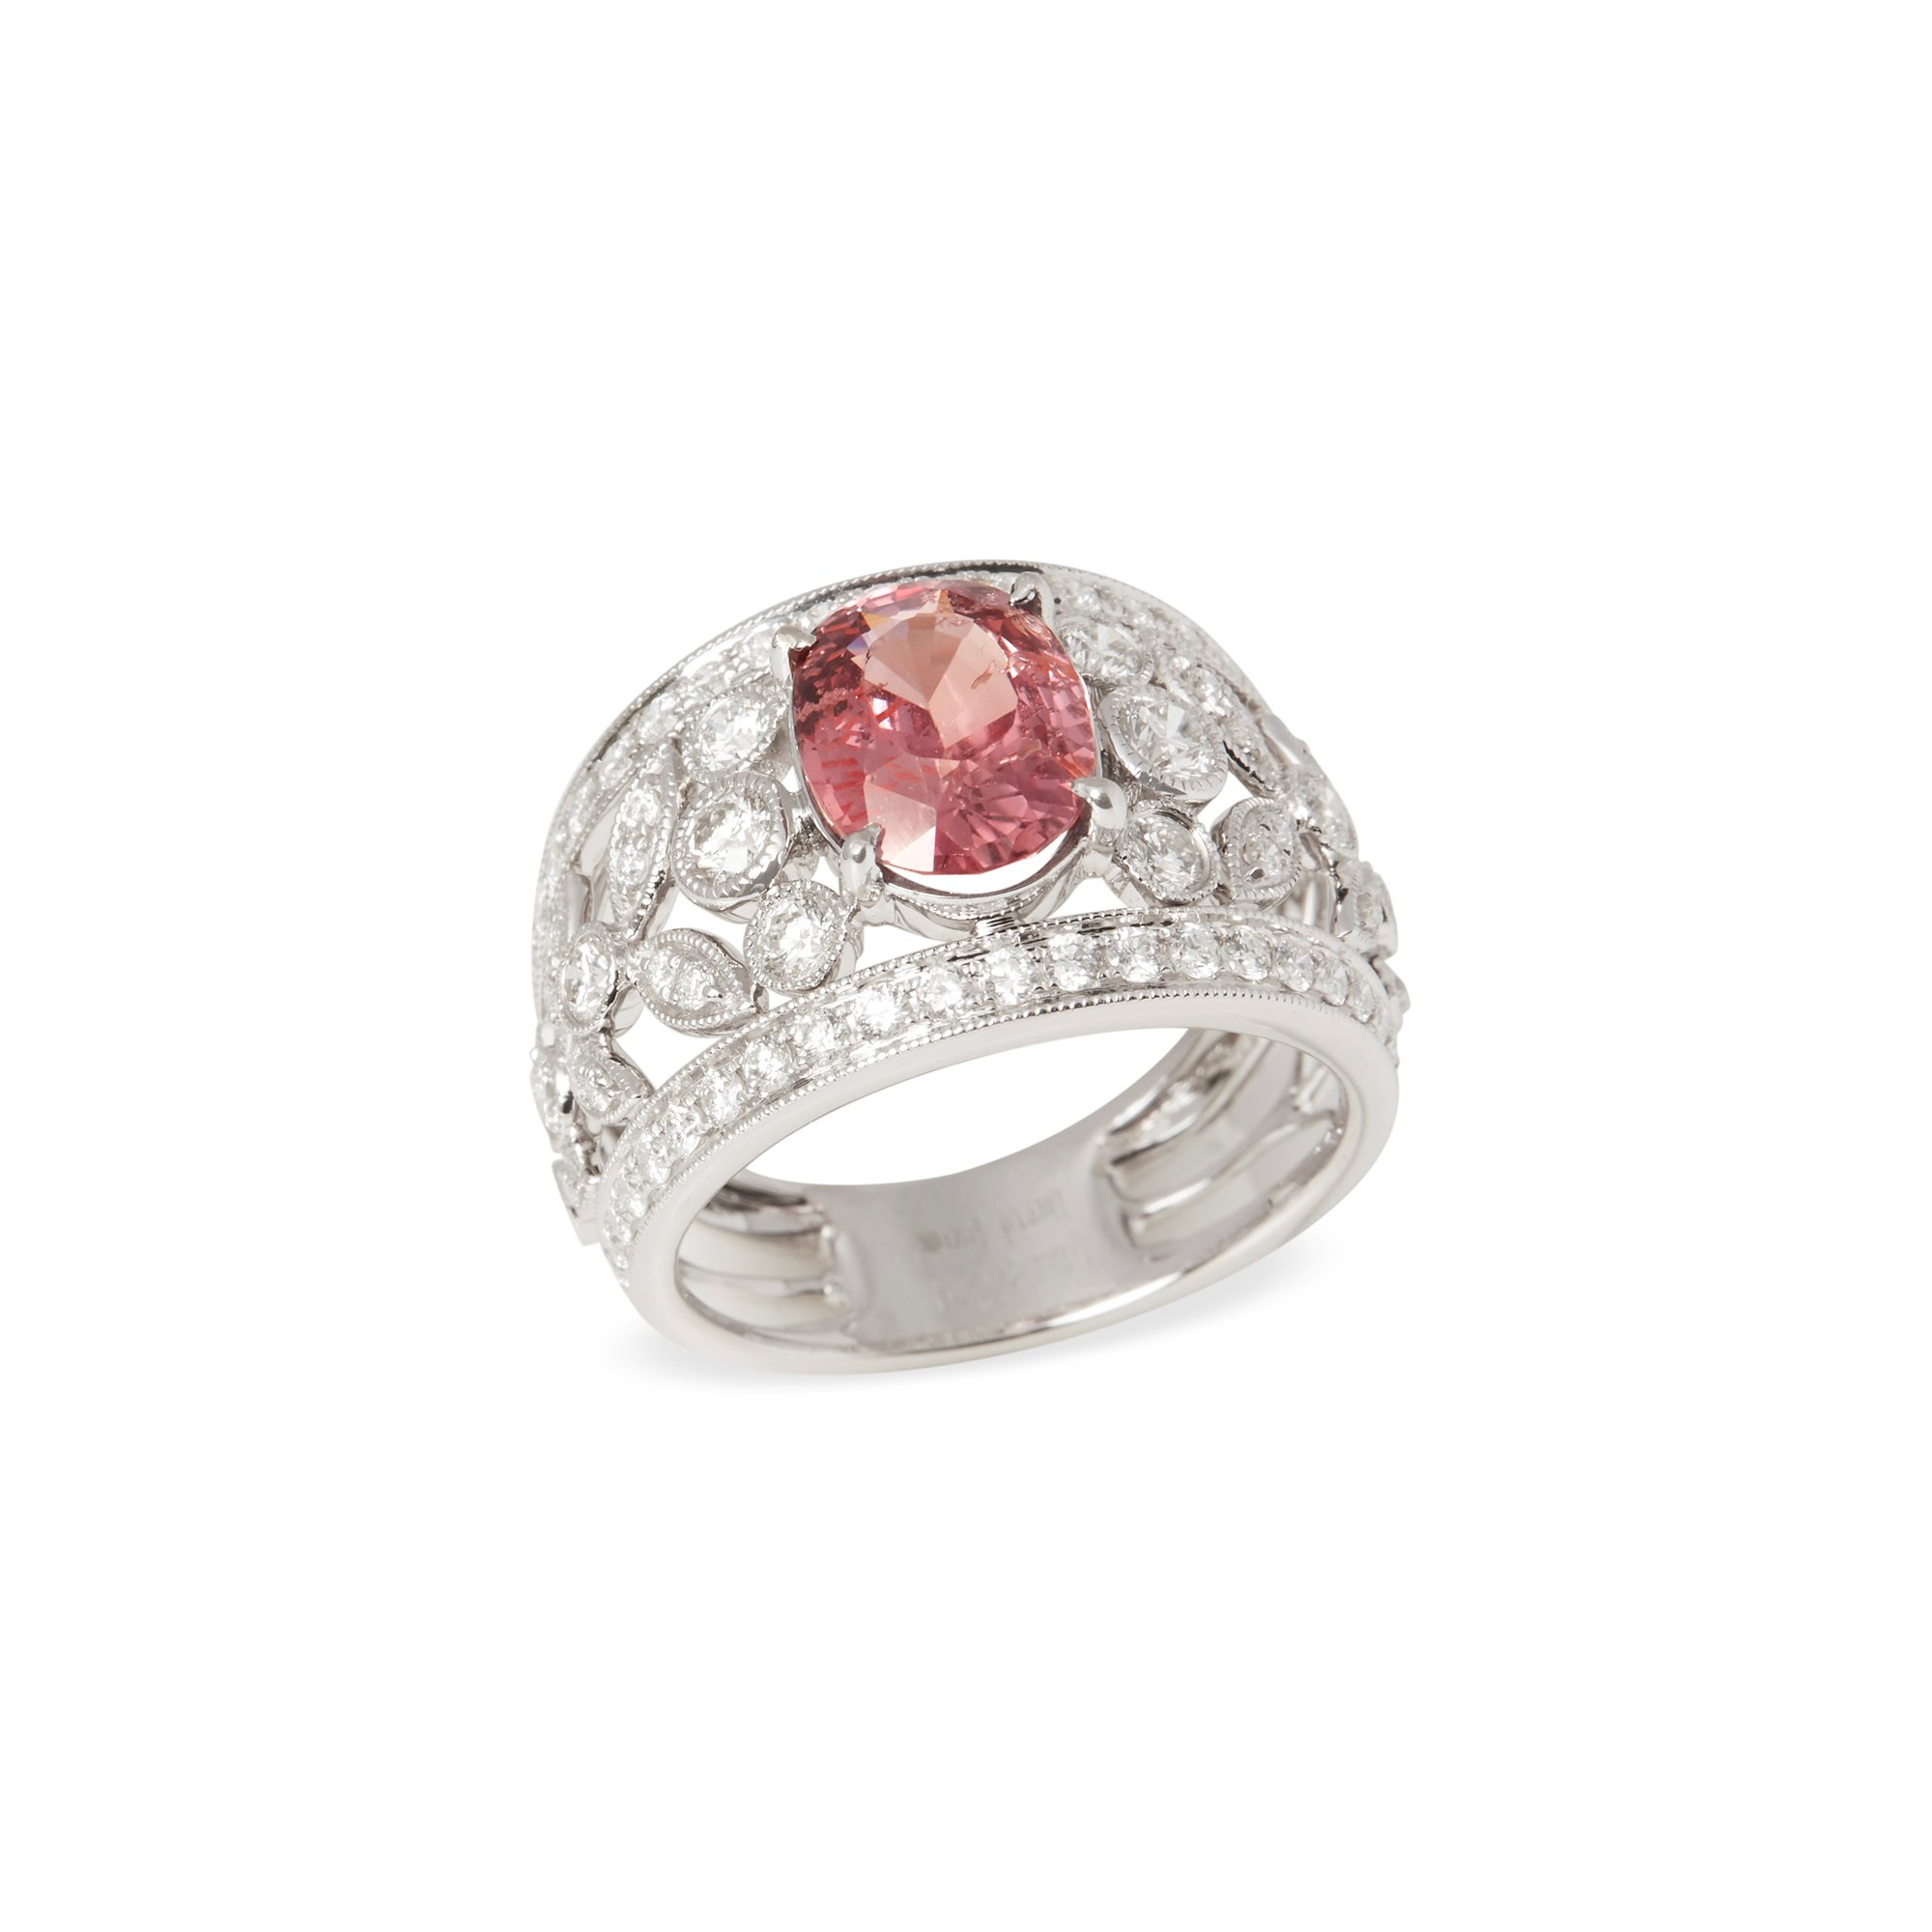 David Jerome 18k White Gold Padparadscha Sapphire and Diamond Ring